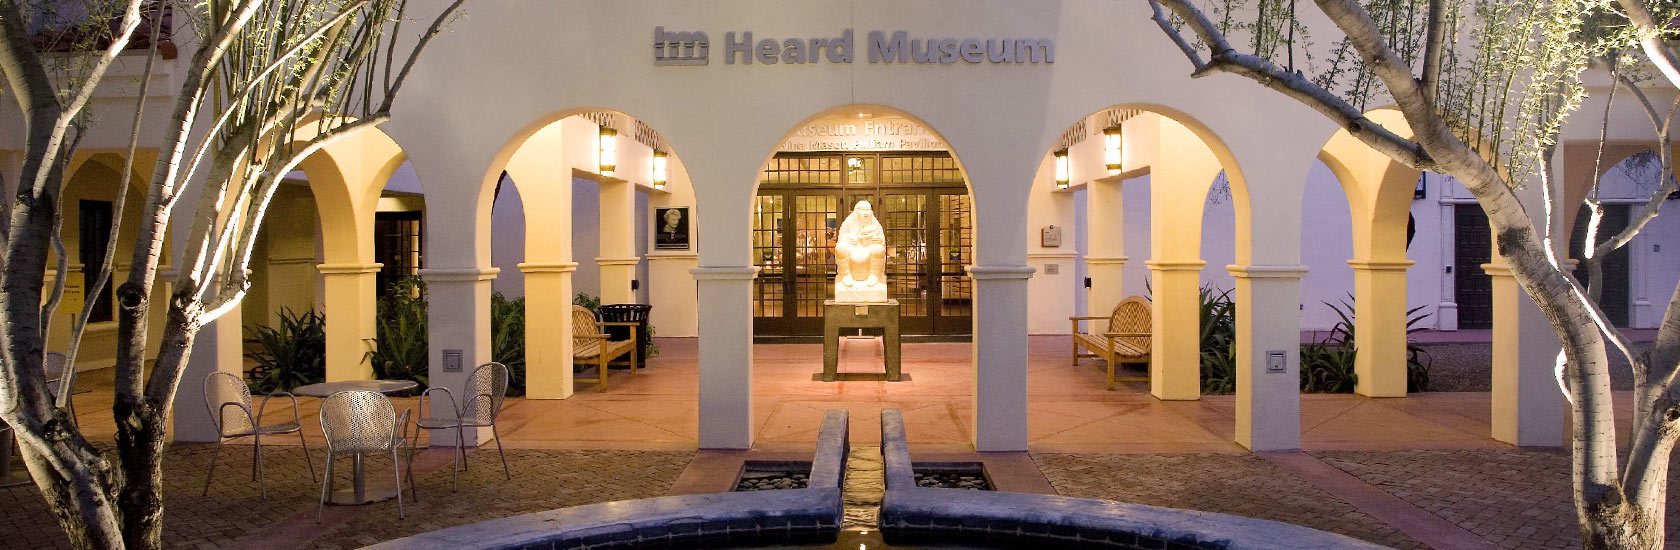 Outside view of the Heard Museum